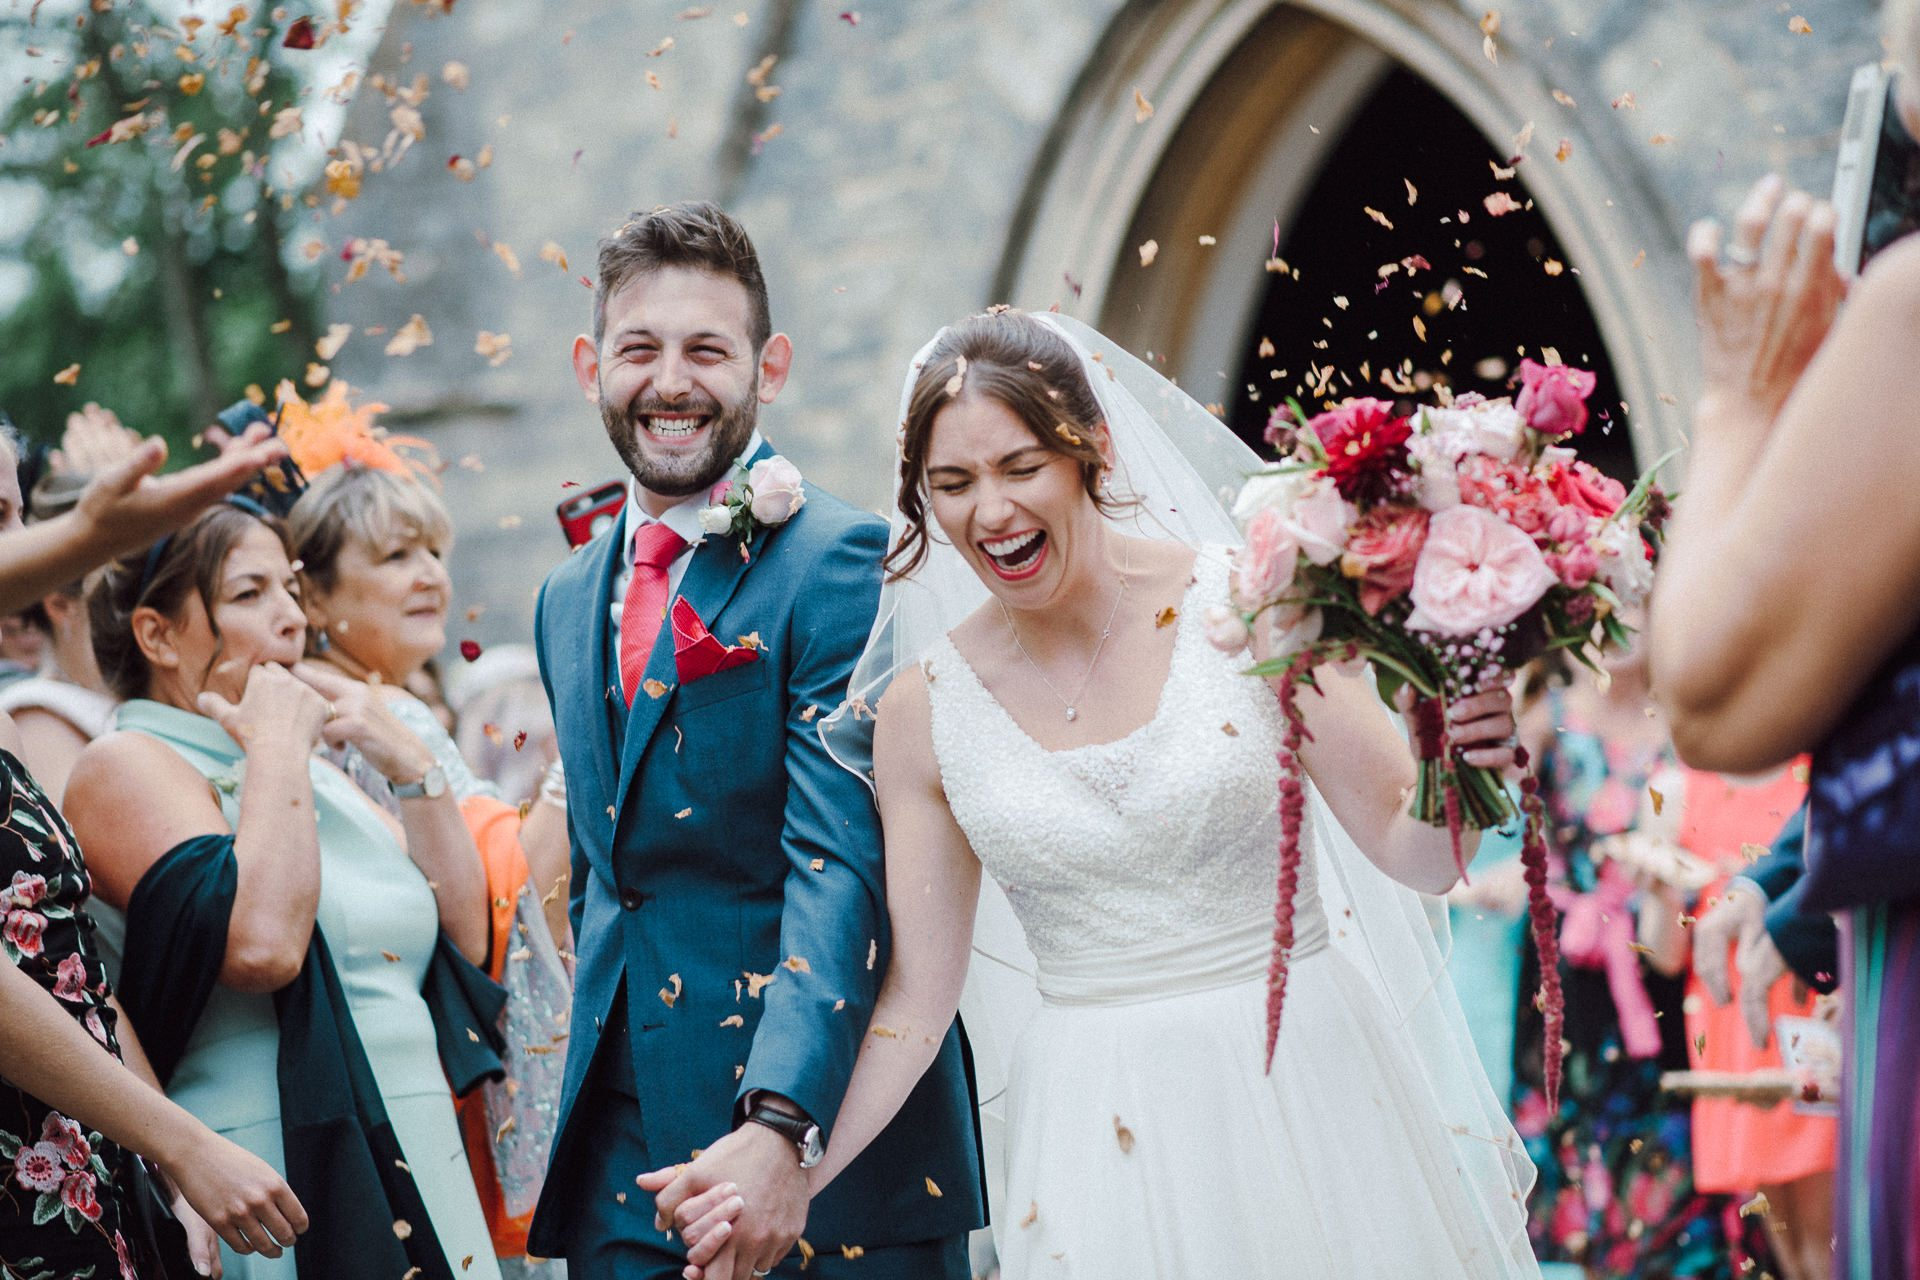 0101-DEVON-SOMERSET-WEDDING-PHOTOGRAPHER-0450-BEST-OF-2019-LOUISE-MAY-DEVON-SOMERSET-WEDDING-PHOTOGRAPHY-20190713-13-25-56-LM1_2103